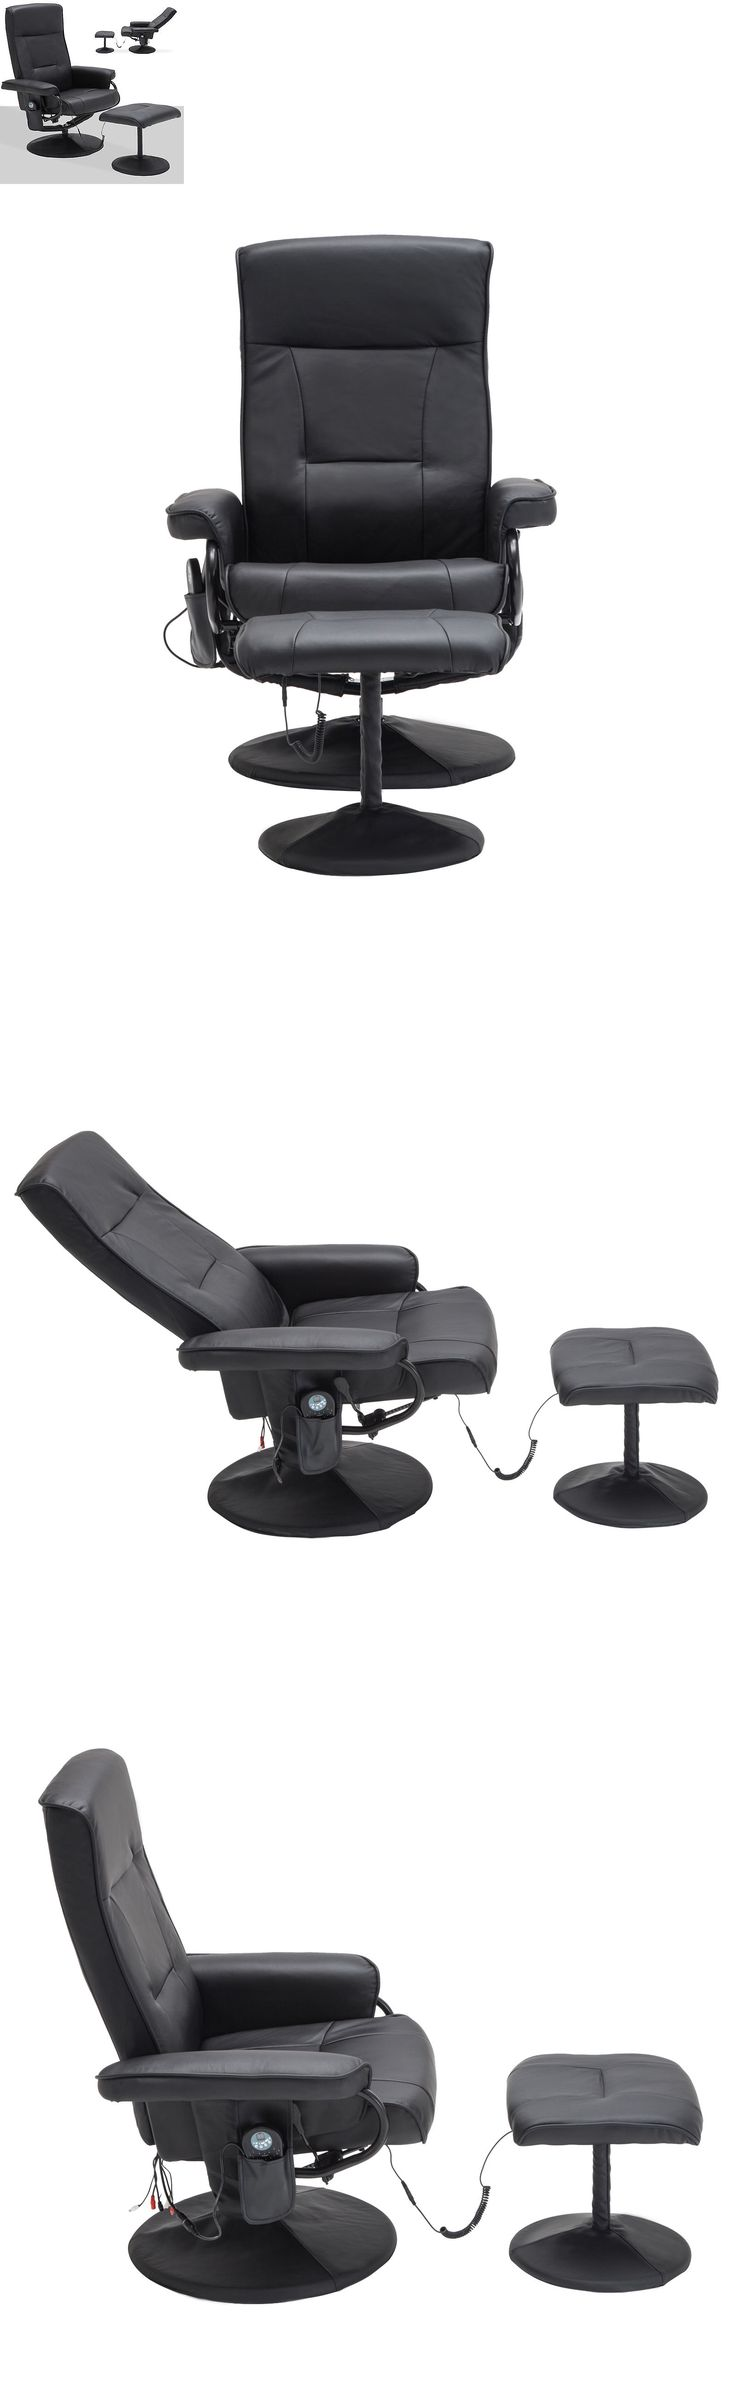 Electric Massage Chairs: Massage Leisure Recliner Swivel Chair 8 Motor Leather W/ Ottoman Footstool Black BUY IT NOW ONLY: $138.9